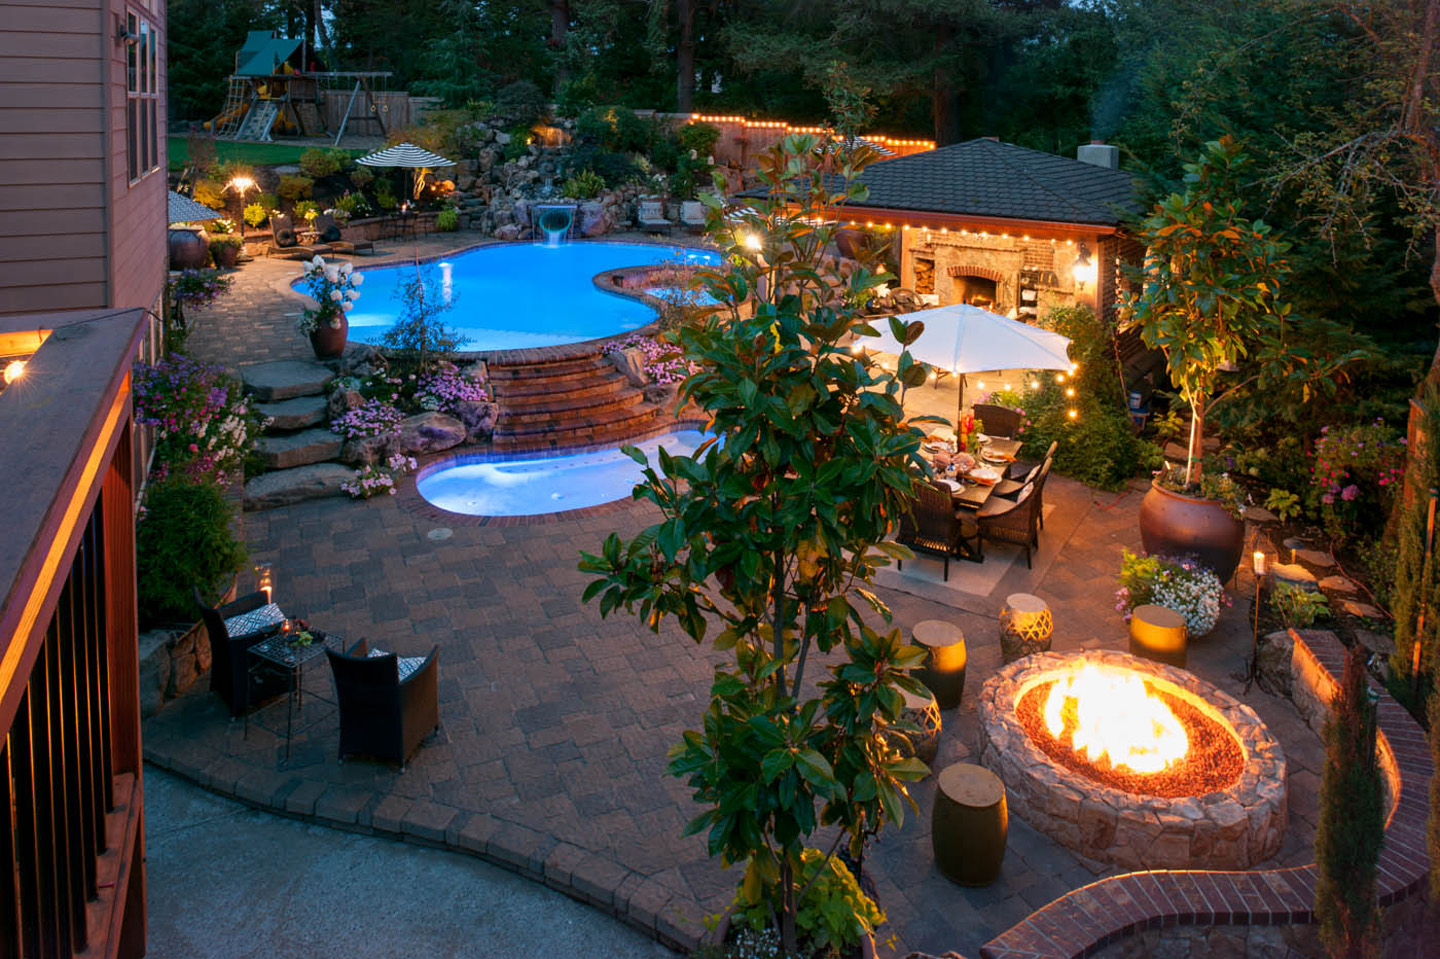 fire pits outdoors pool